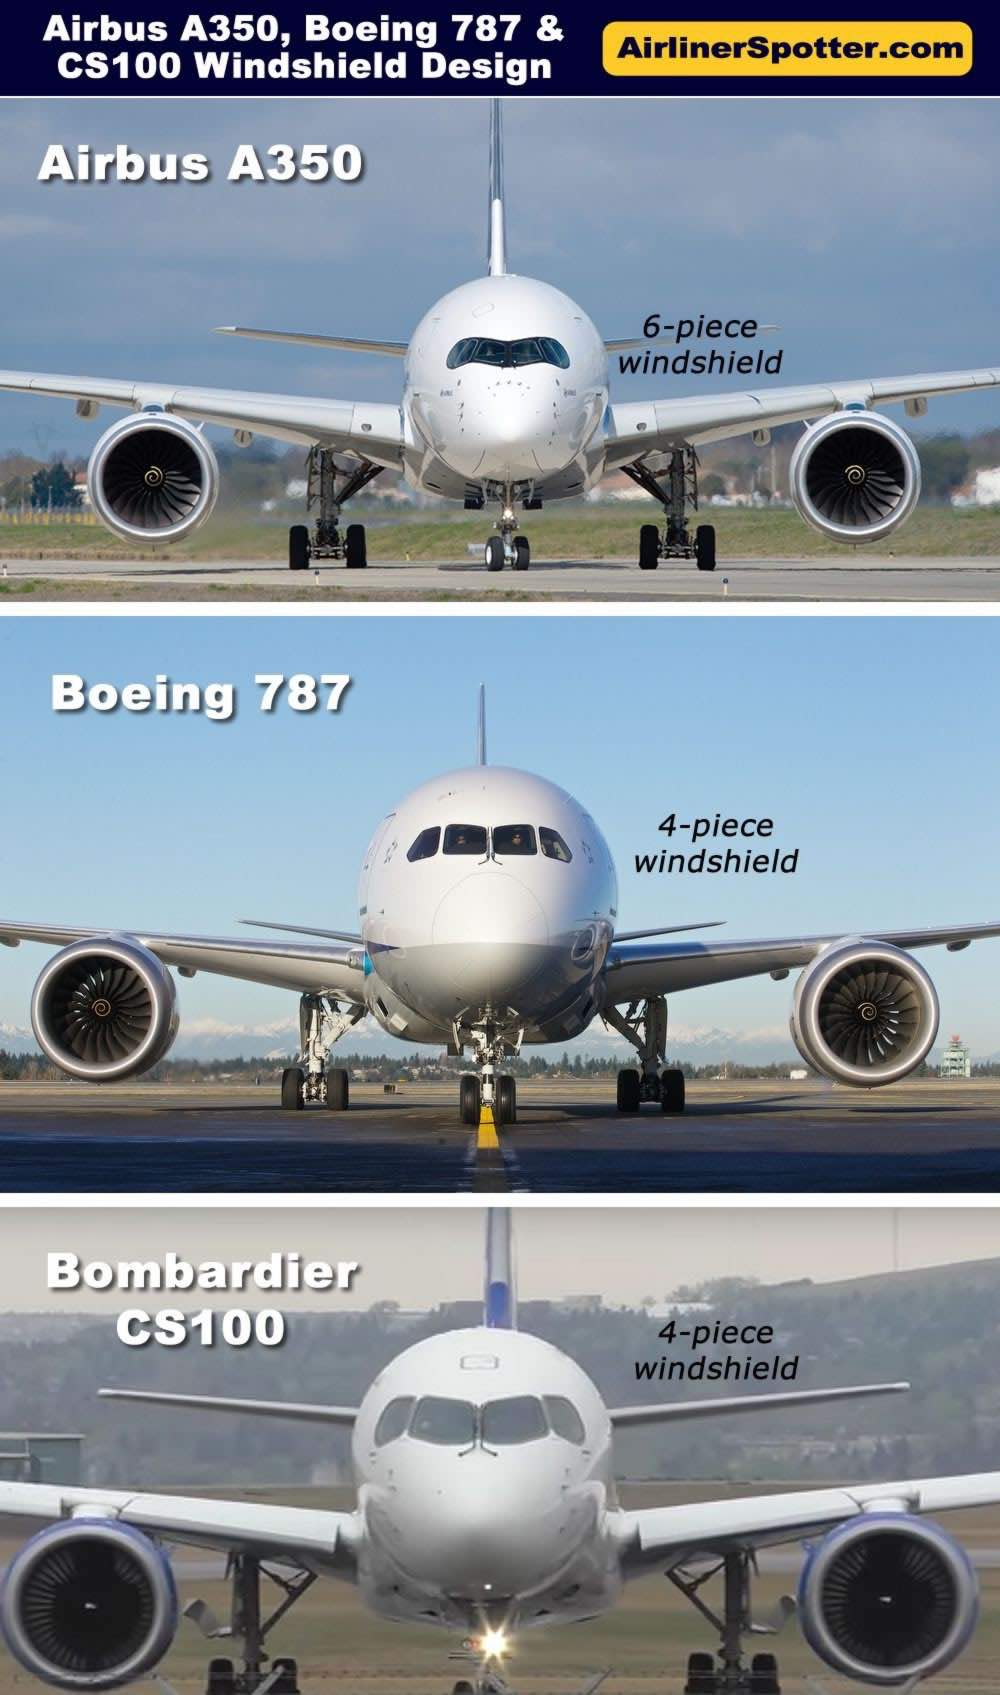 The different configurations of the cockpit windshield, seen from a front view, on the Airbus A350 (top) with its 6-piece windshield, and Boeing 787 with its 4-piece windshield (below). Also shown is the windshield configuration of the Bombardier CS100.